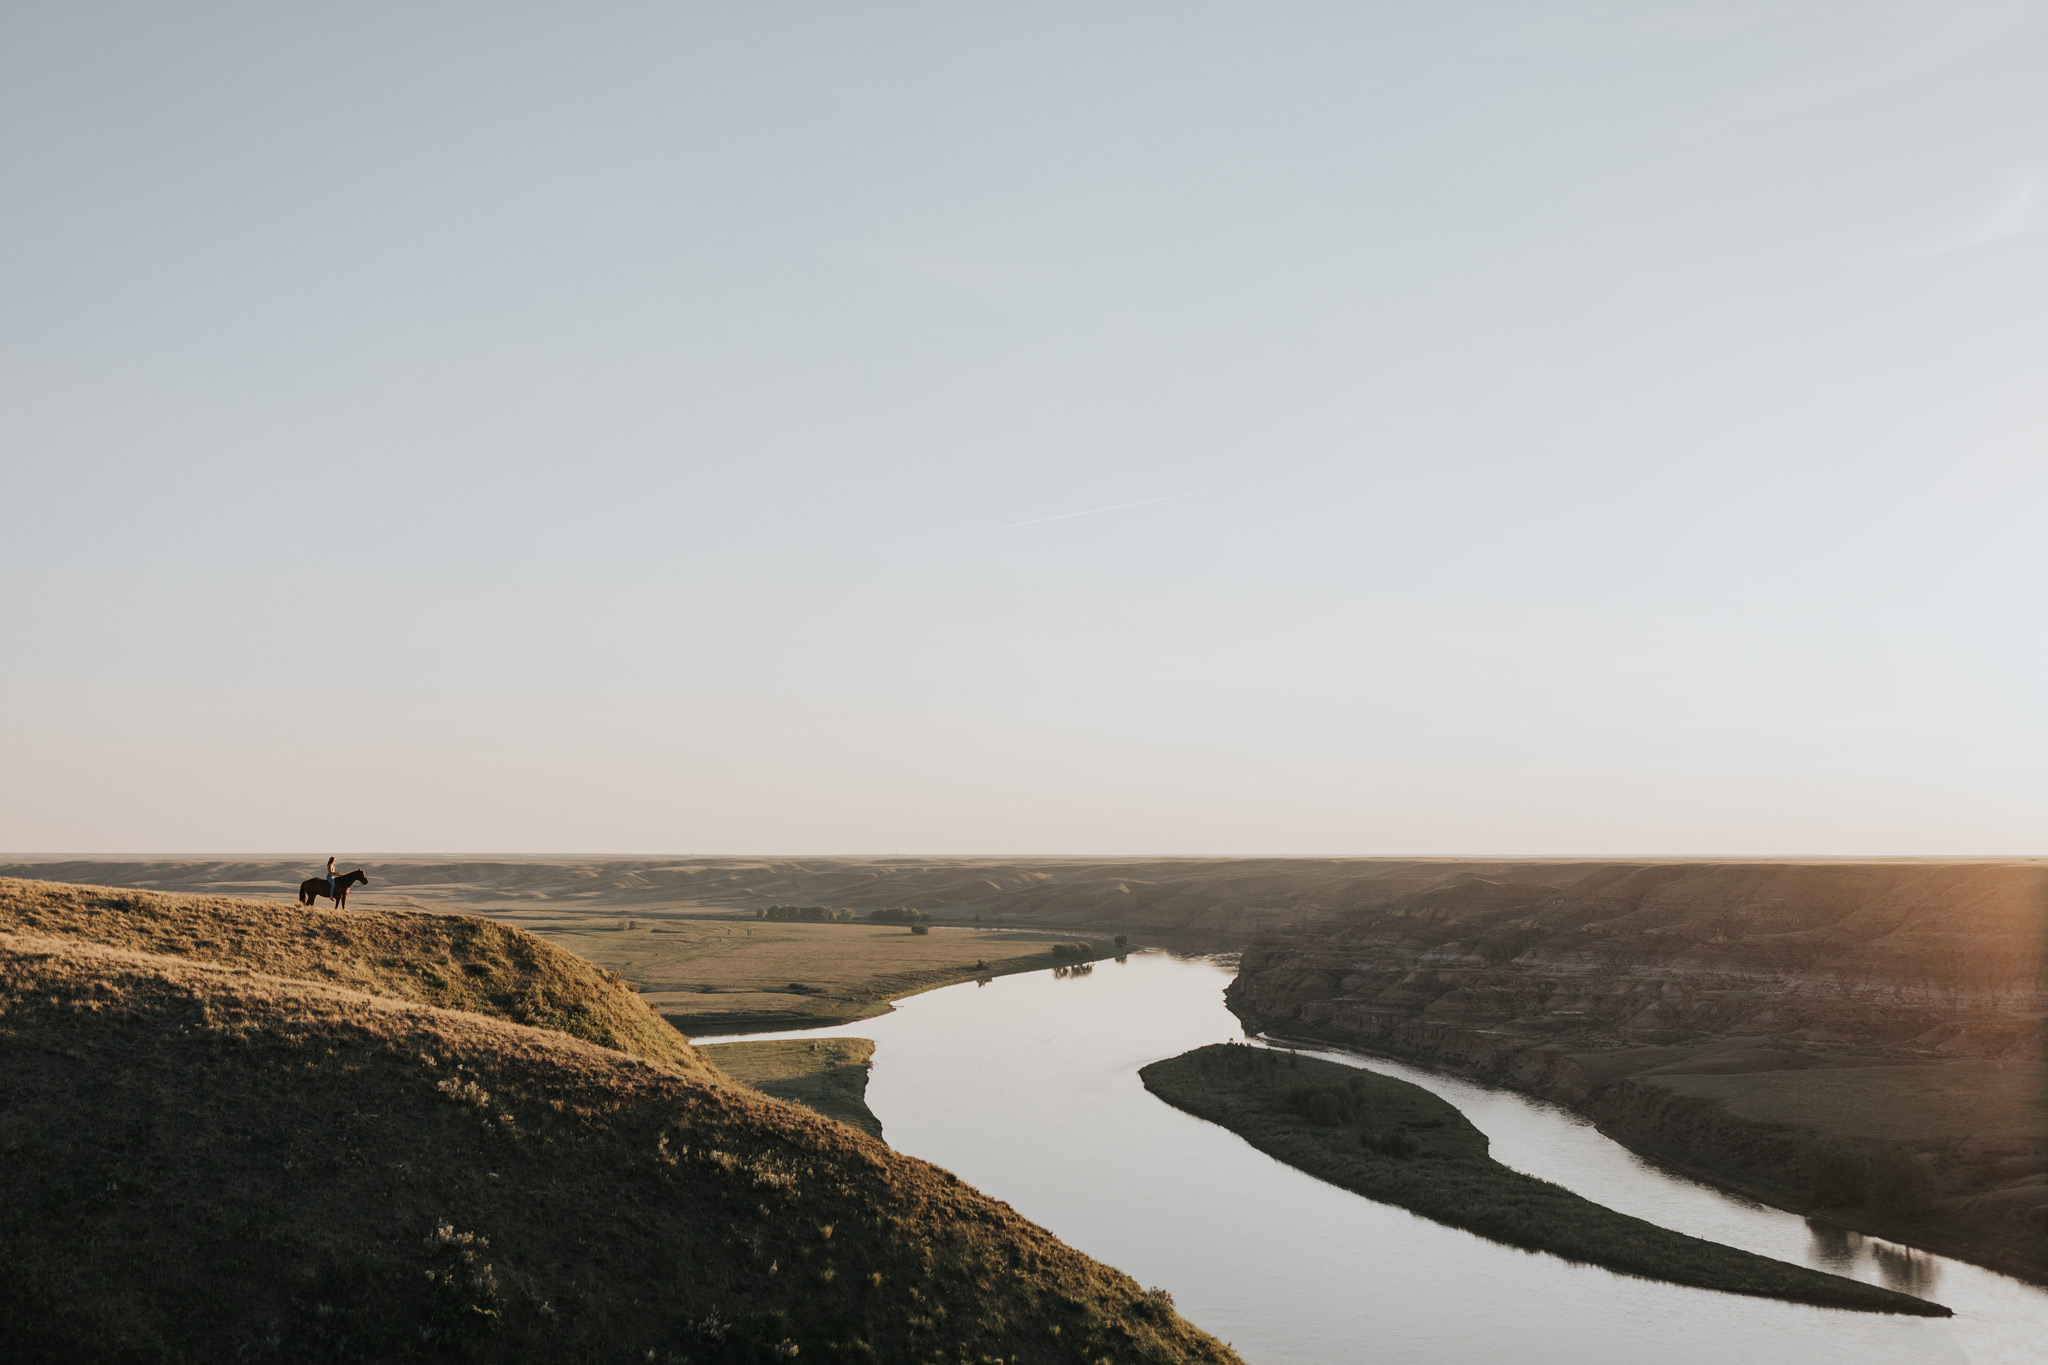 view of coulees river and girl on horse